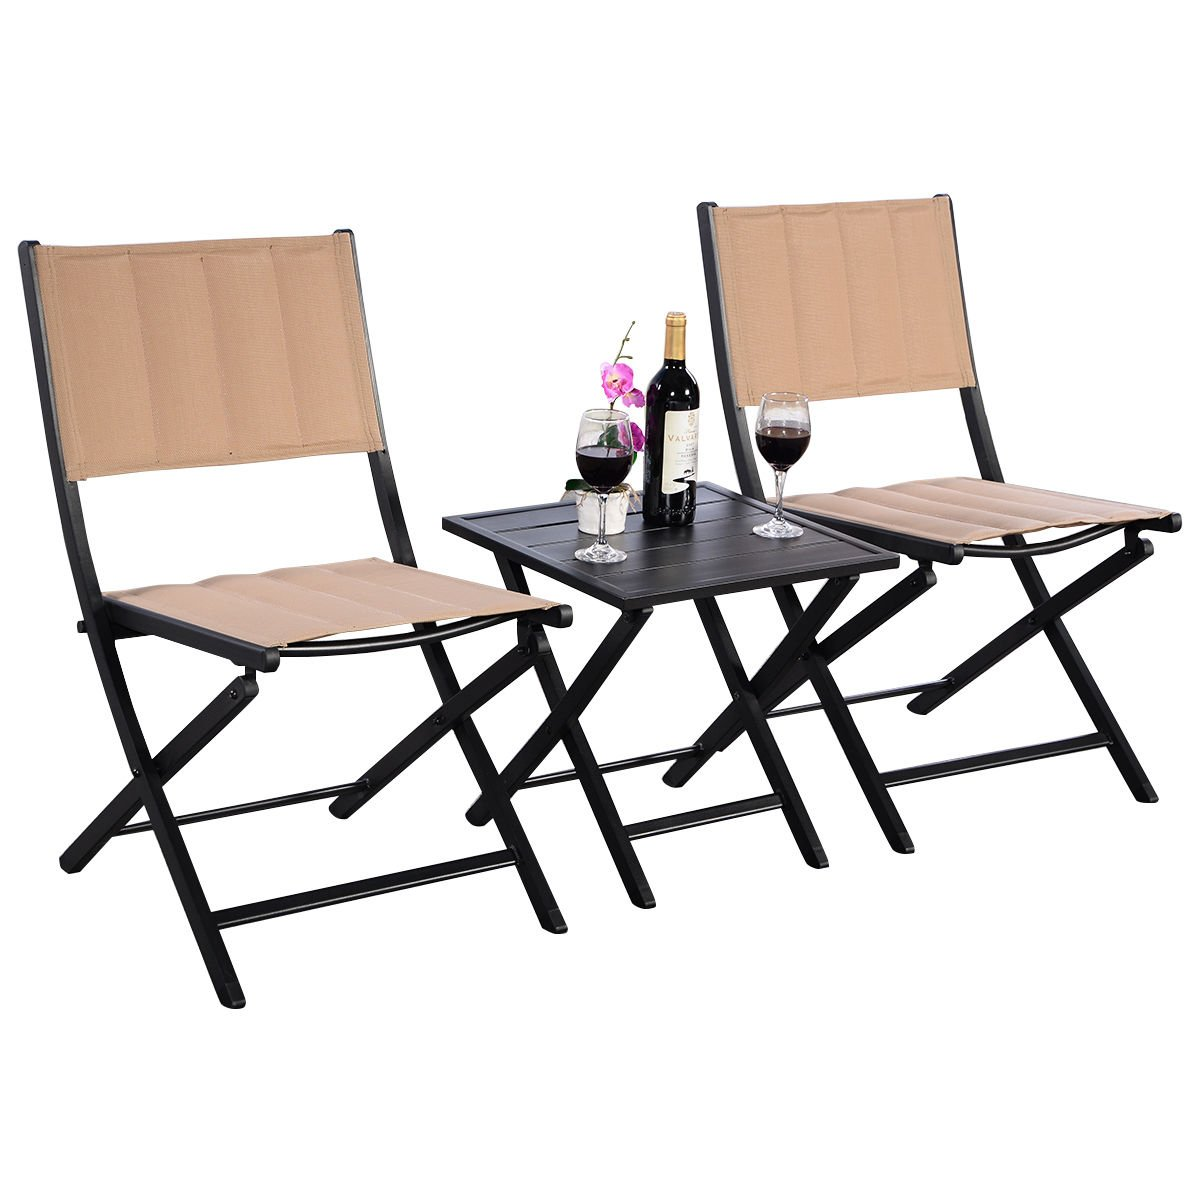 3PCS. Folding Square Table & Chairs Set Bistro Style Garden Furniture Indoor Outdoor Patio For Leisure